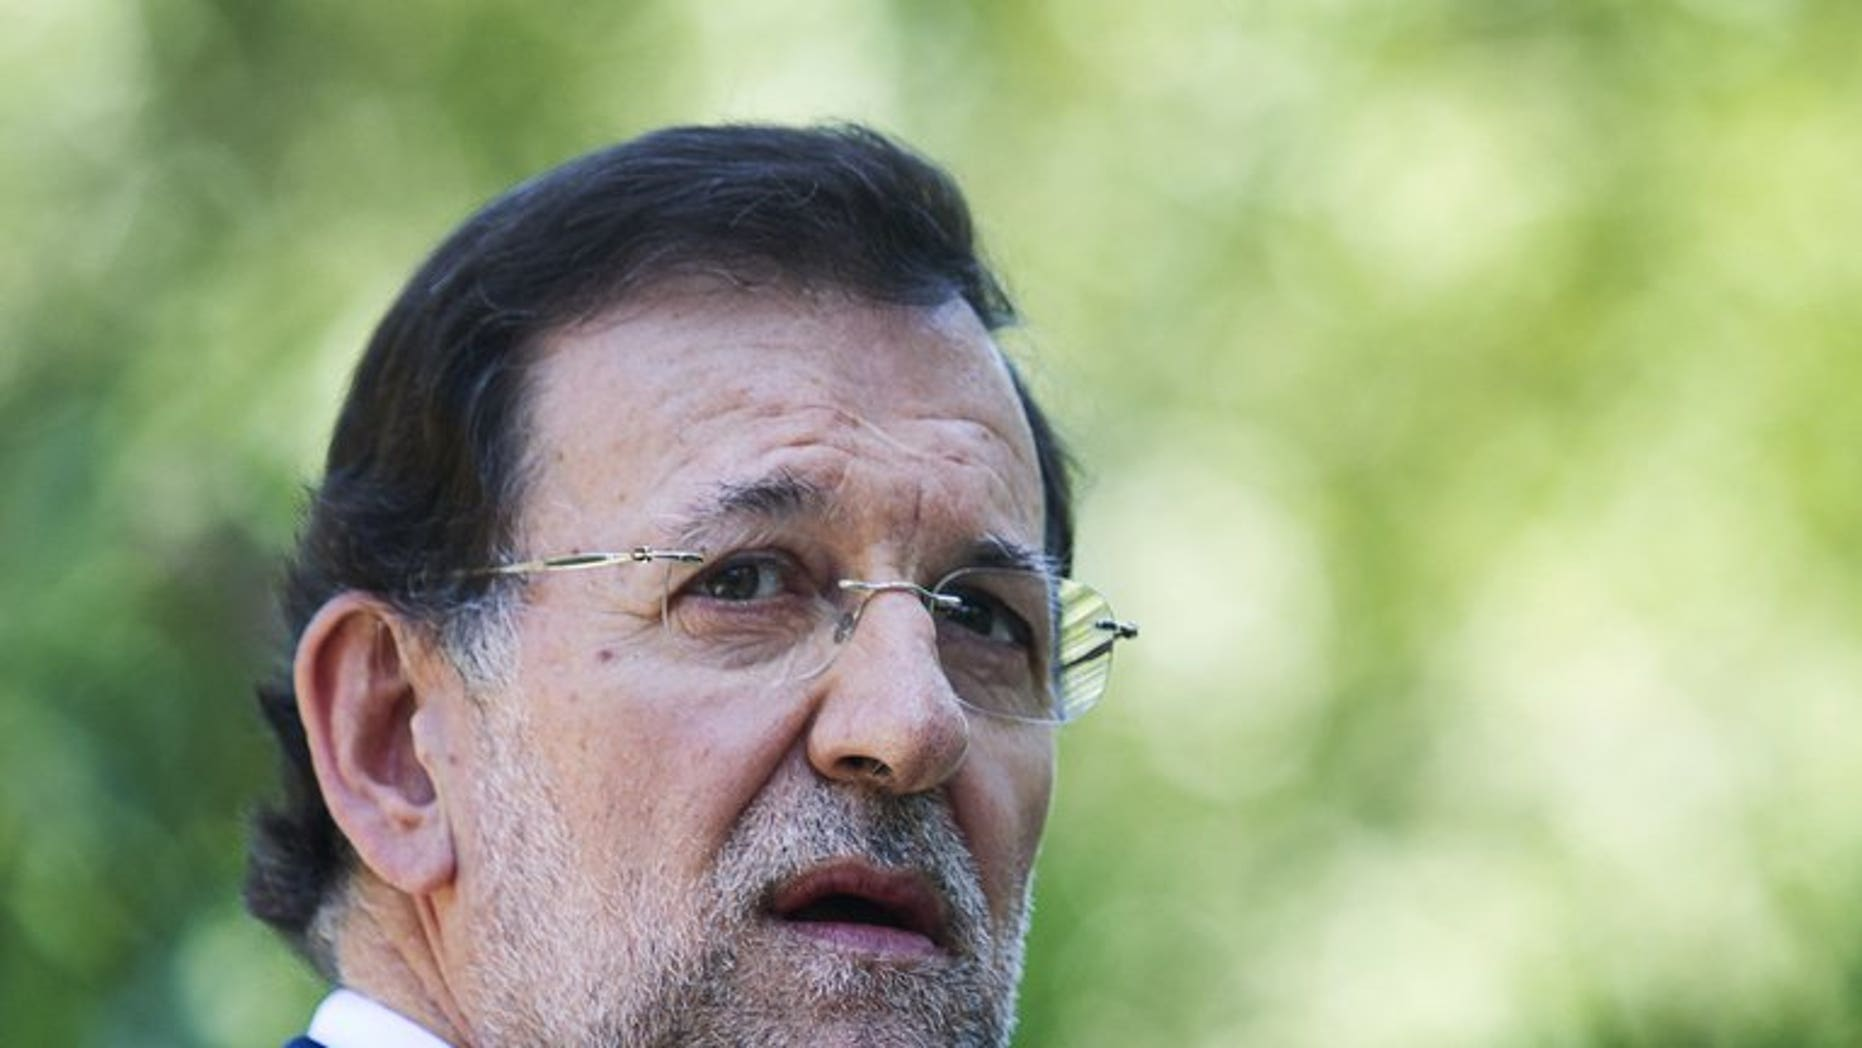 Spain's Prime Minister Mariano Rajoy gives a press conference in Mallorca, on August 14, 2012. A leading Spanish newspaper has published a page from what it said were original, hand-written ledgers implicating Rajoy in a slush fund scandal before he came to power.